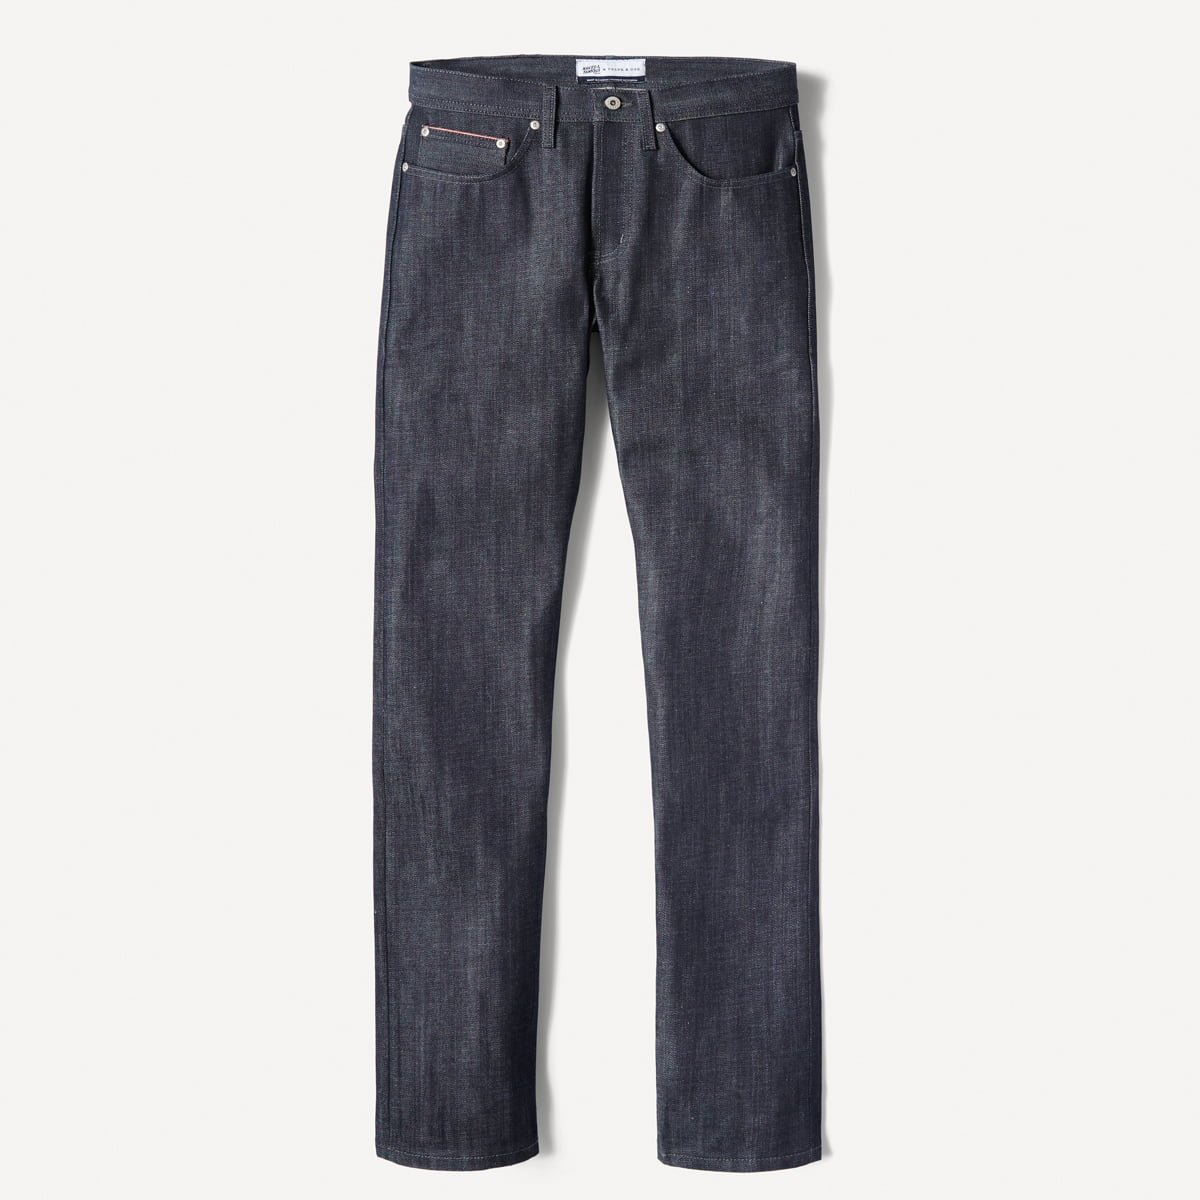 Naked & Famous x Frank & Oak Slim-Straight Selvedge Denim in Redcore Indigo1